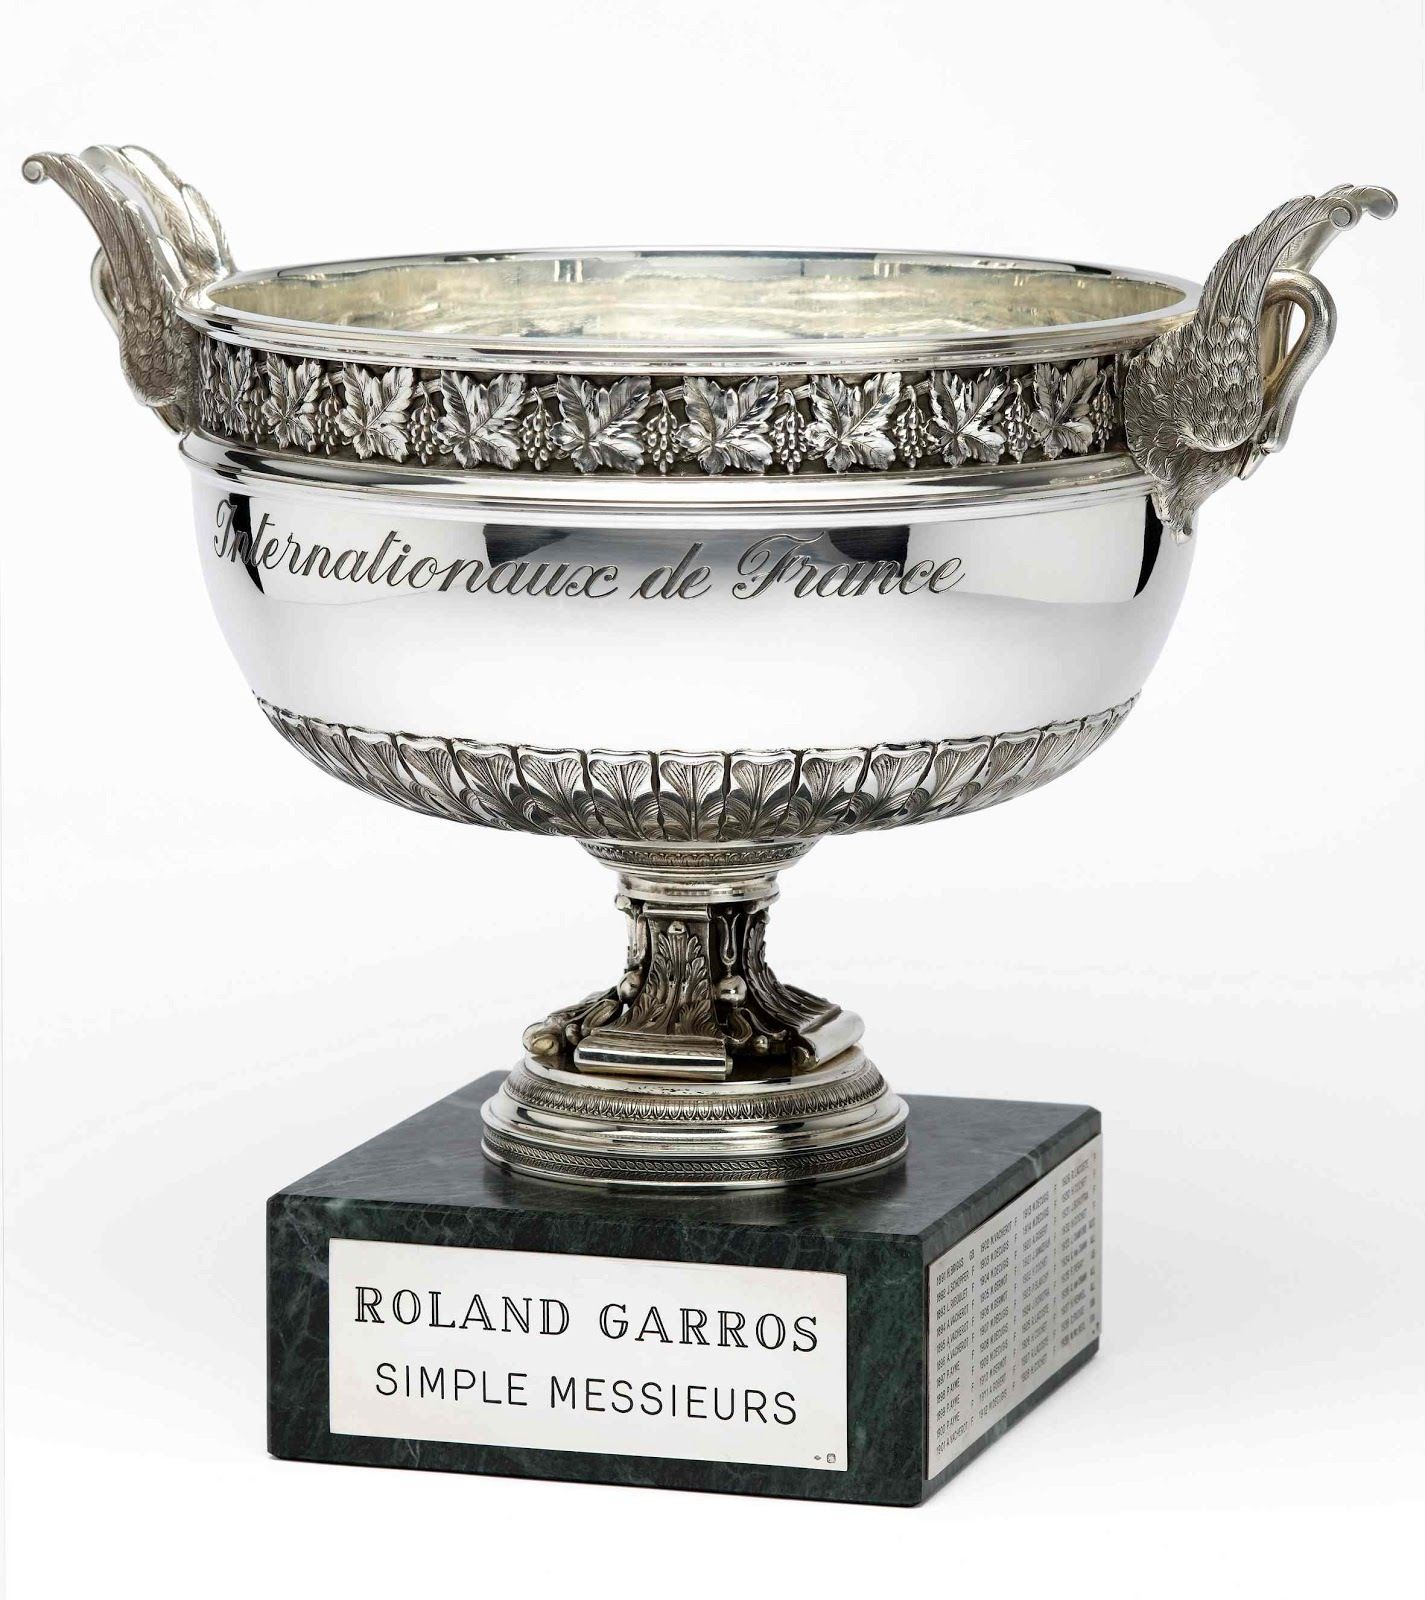 The Musketeers' Trophy